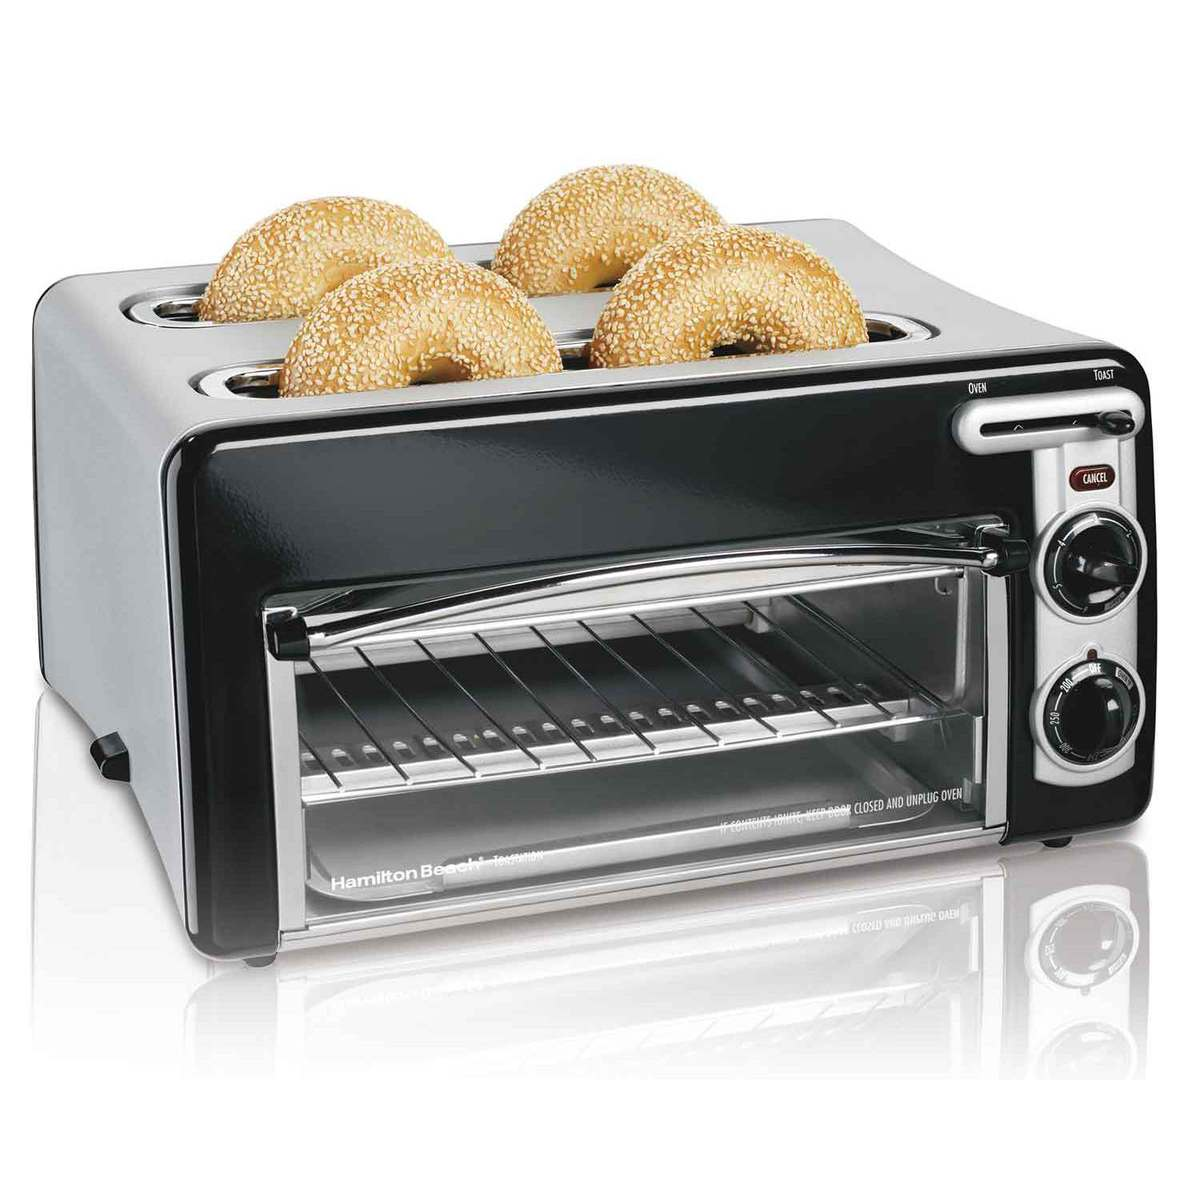 Toastation® 4 Slice Toaster & Oven (24708)